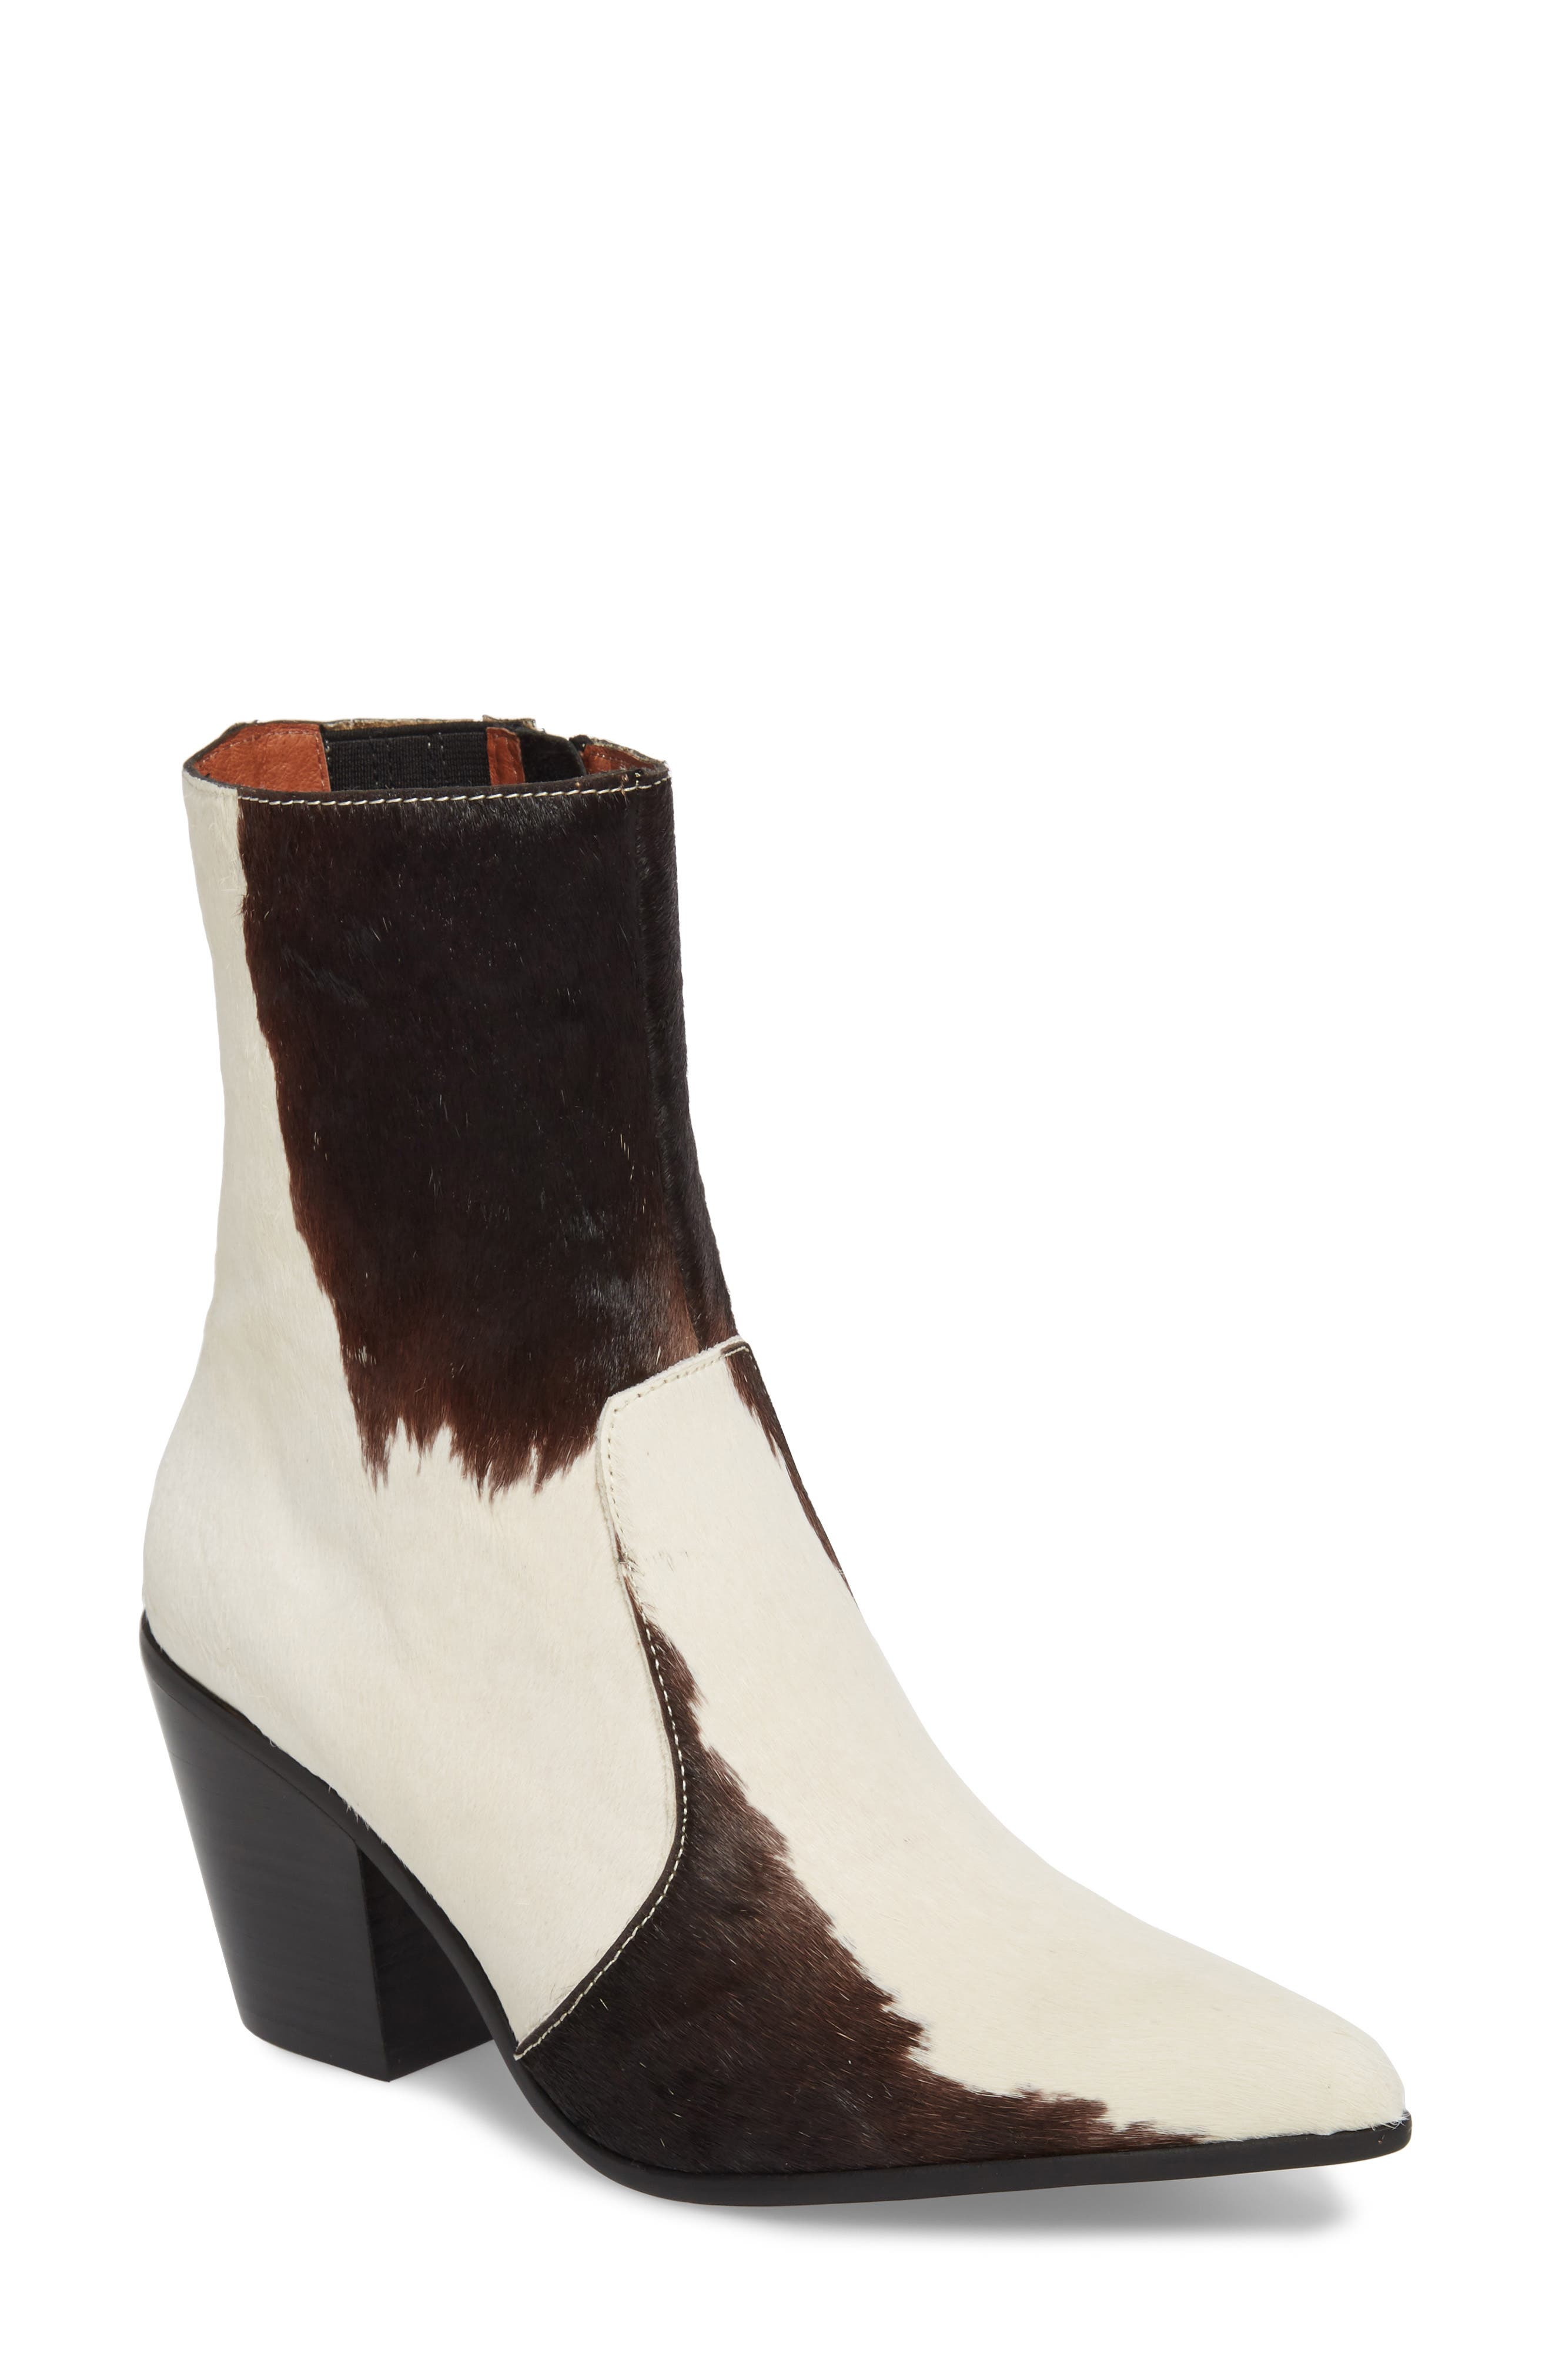 Alternate Image 1 Selected - Jeffrey Campbell Ace-F Genuine Calf Hair Bootie (Women)